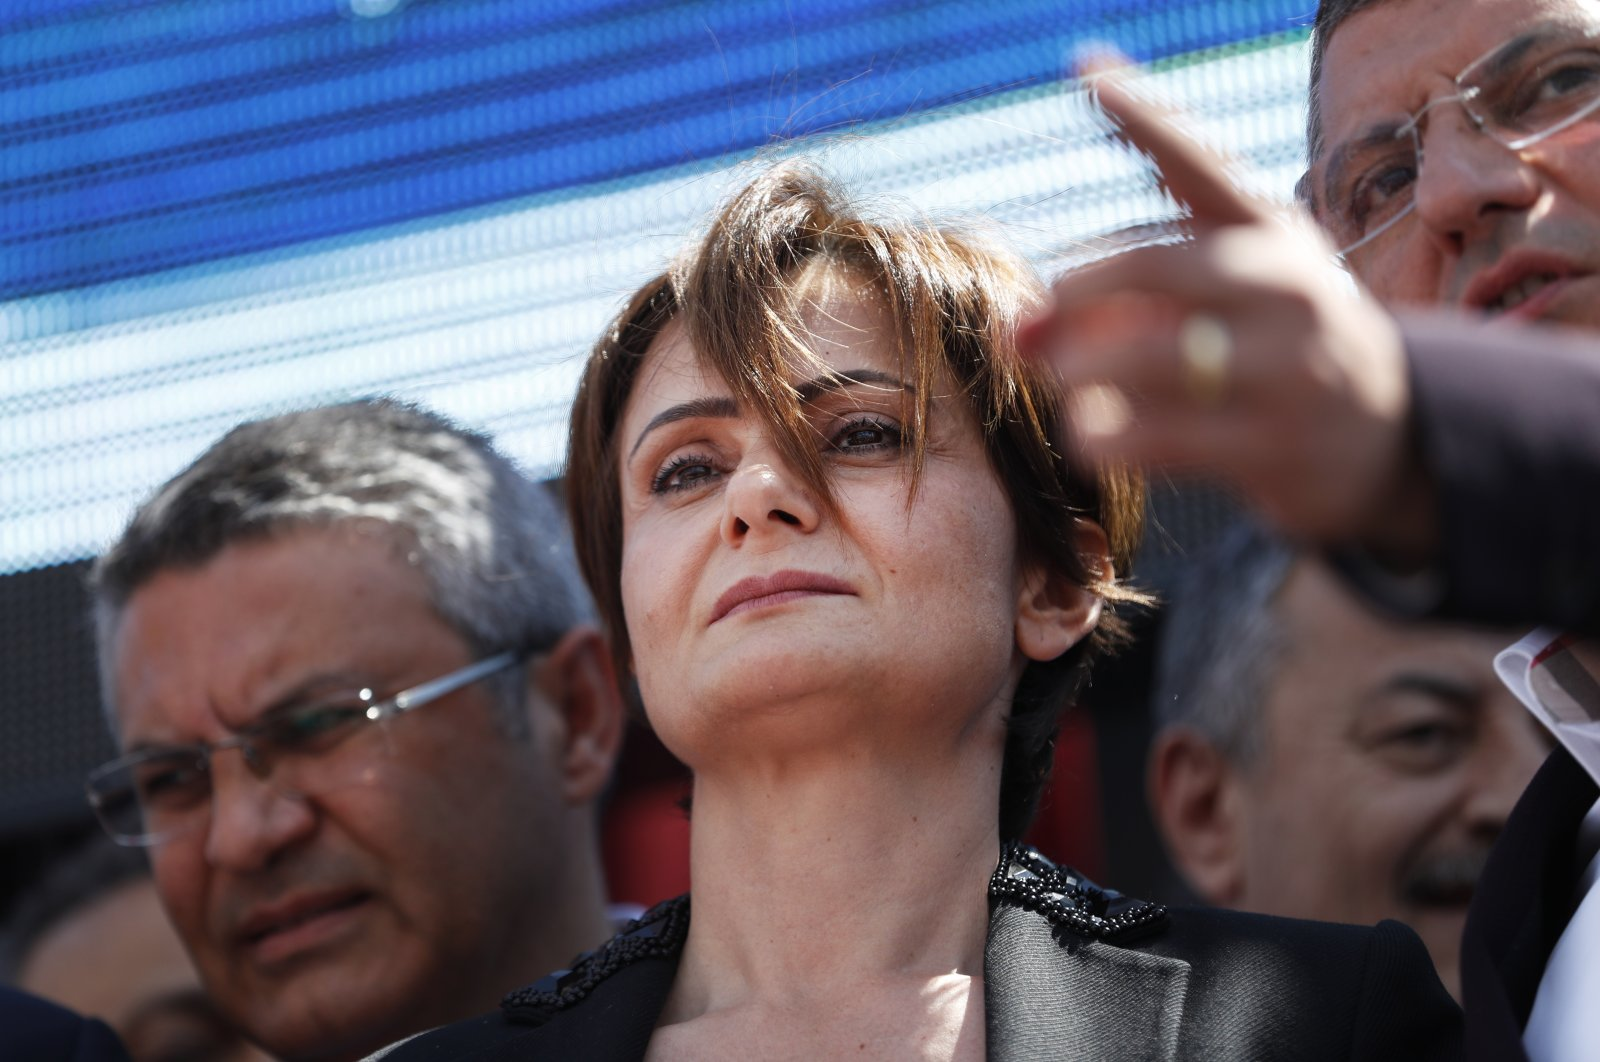 Canan Kaftancıoğlu, Turkey's opposition Republican People's Party (CHP) Istanbul provincial chairperson is surrounded by supporters outside a court in Istanbul, Turkey, July 18, 2019. (AP File Photo)